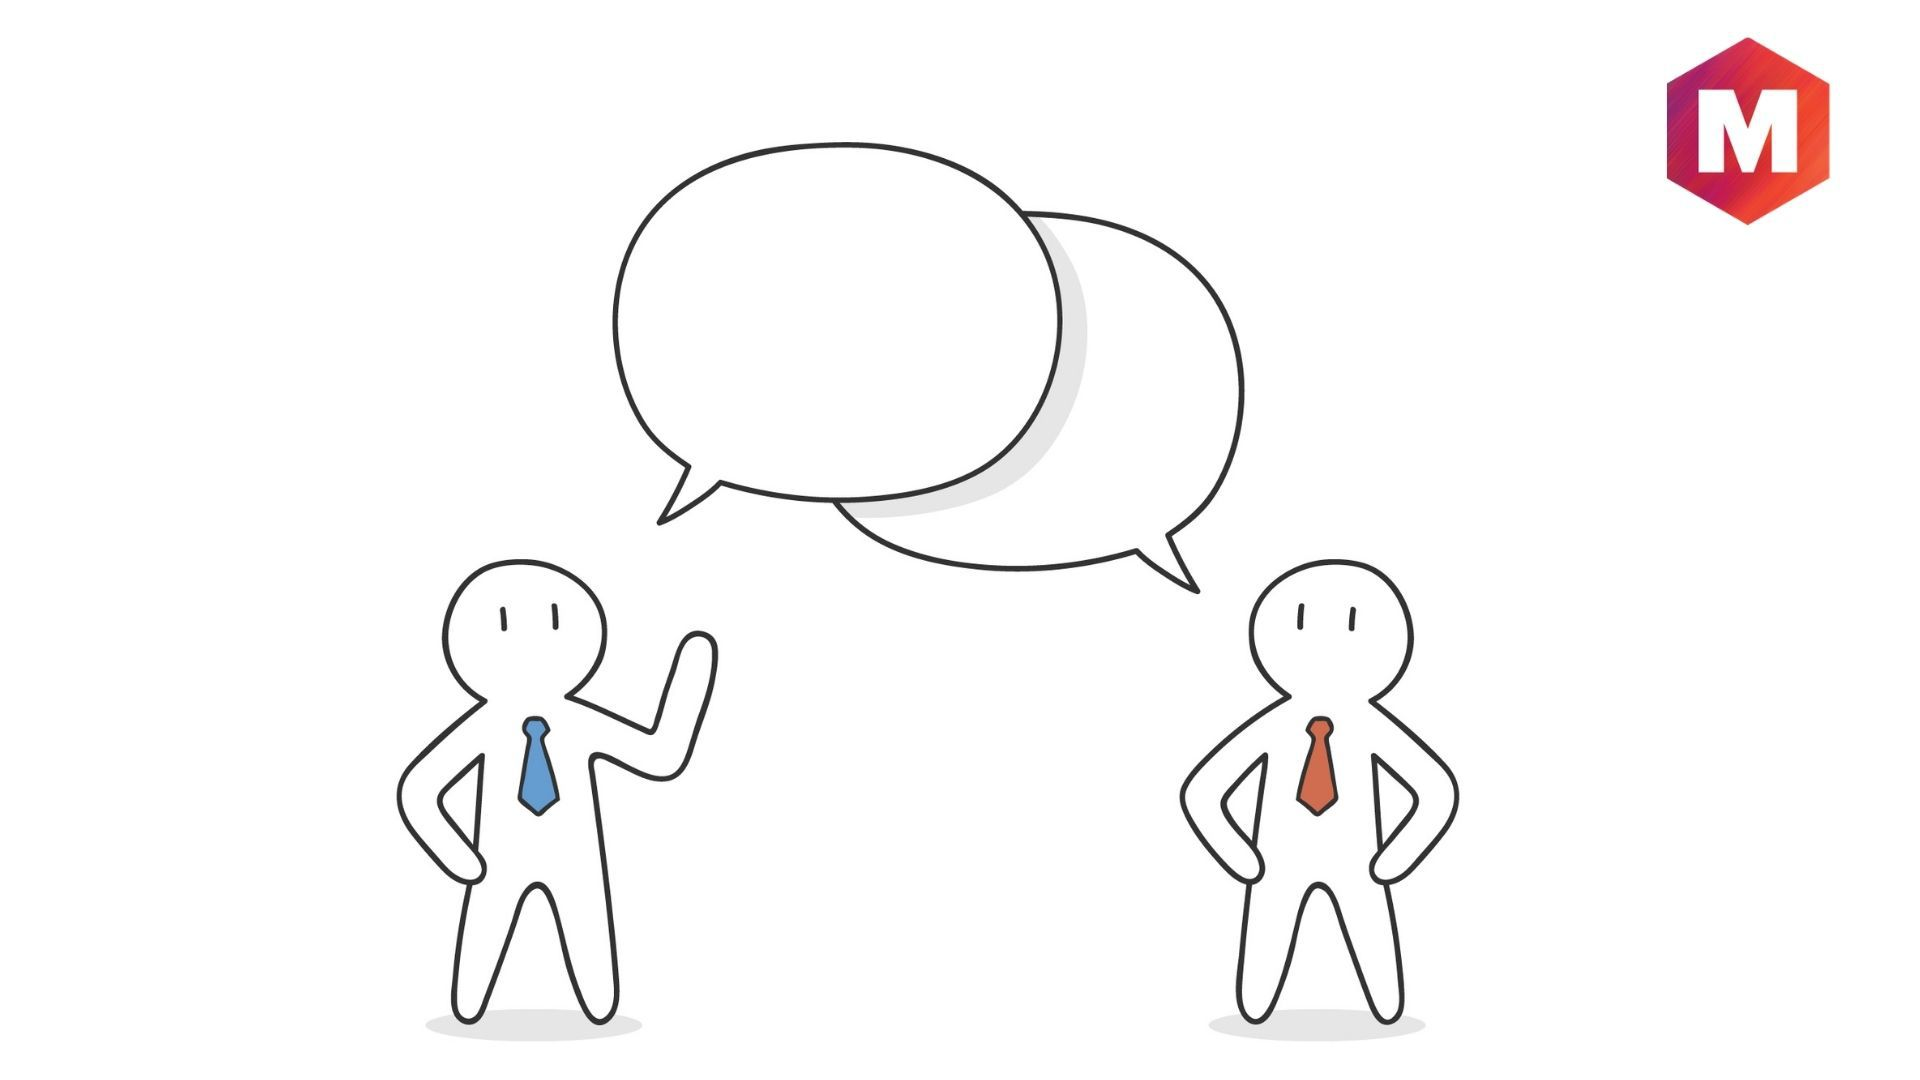 Why and how should we be communicating better